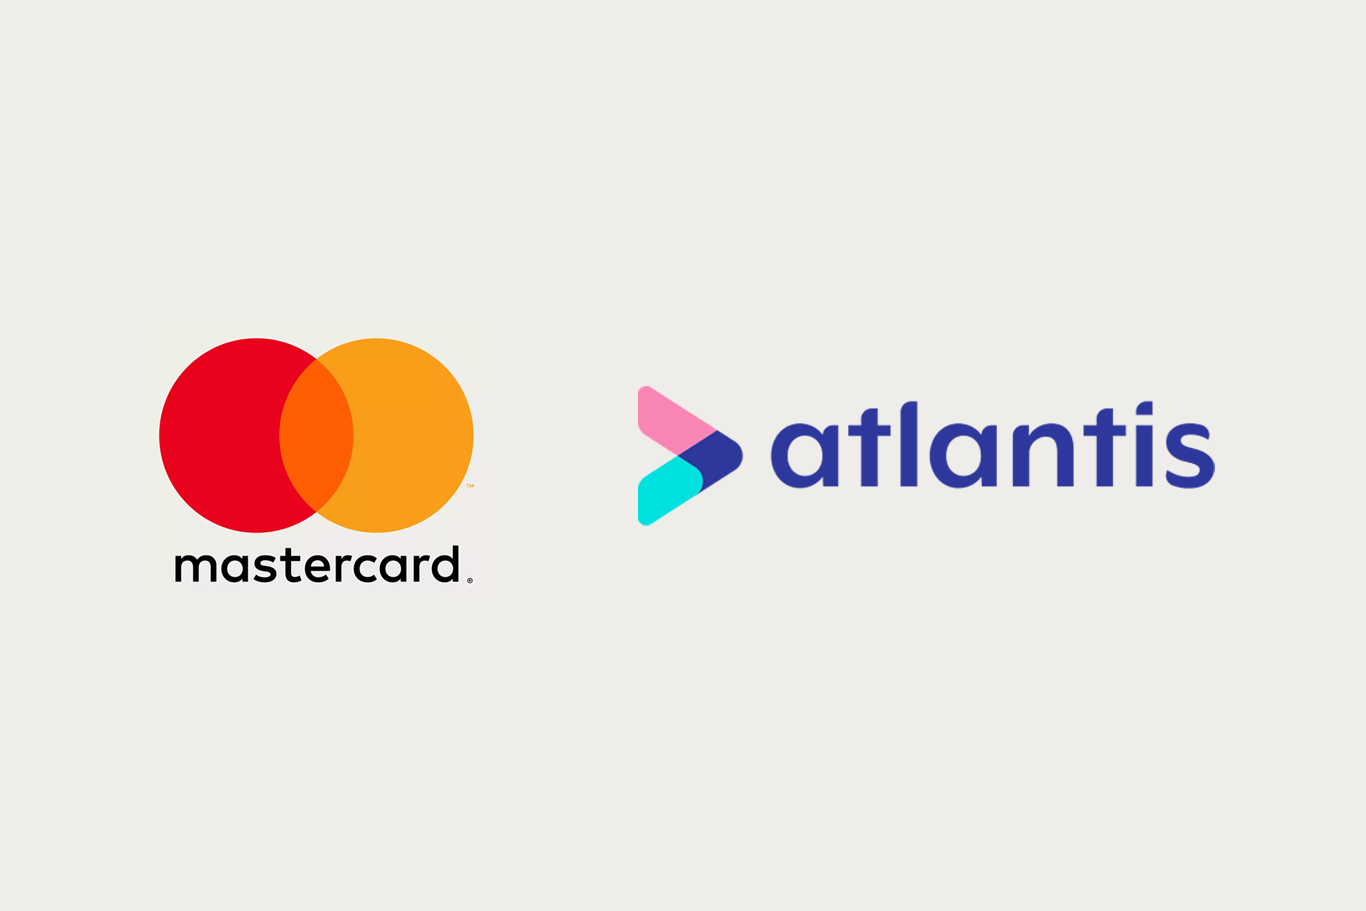 Mastercard Partners with Atlantis to Expand Digital First Program in India